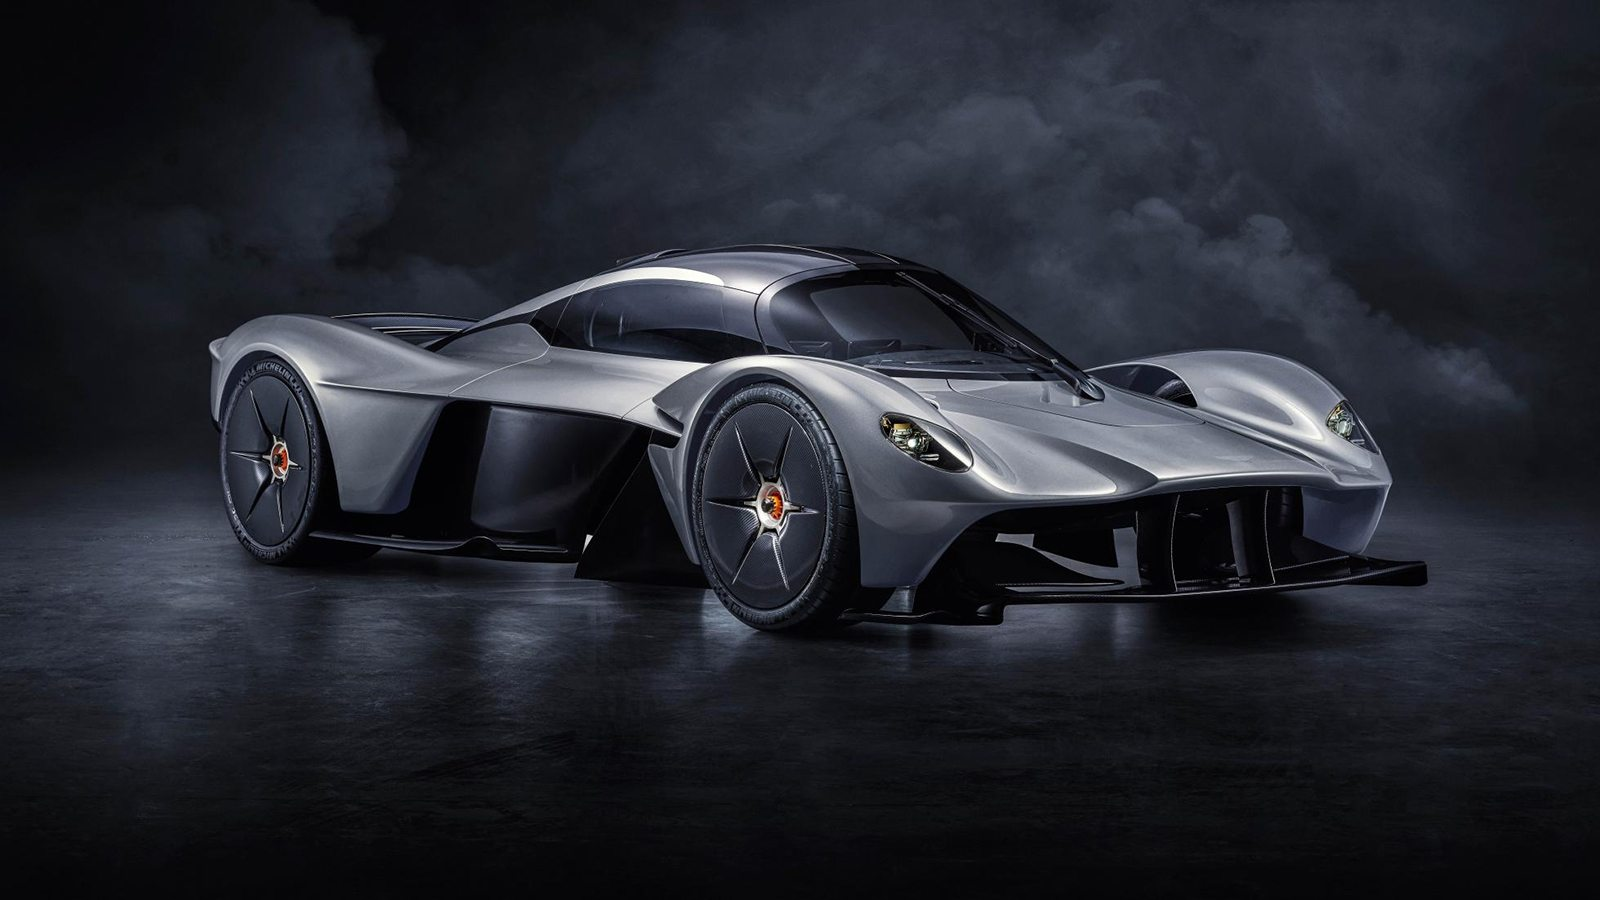 Pagani Car Wallpaper New Images Of Aston Martin S F1 Inspired Valkyrie Oracle